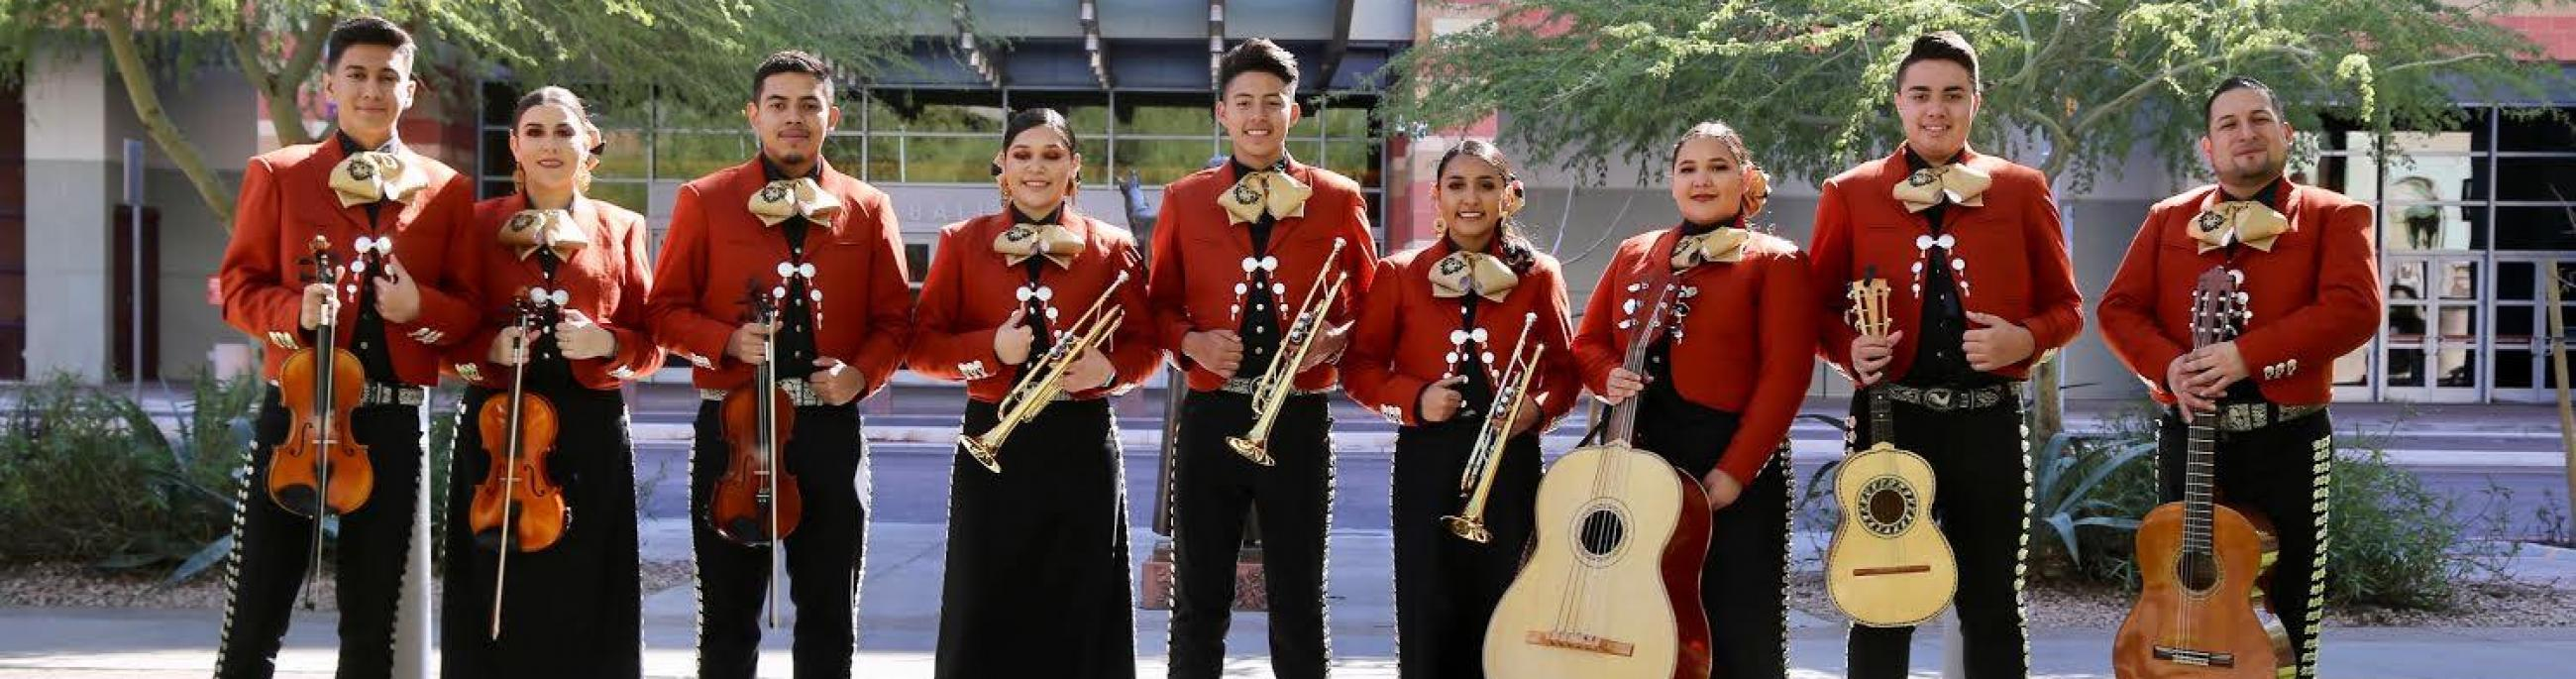 Mariachi Corazon del Valle pose outdoors with their instruments.